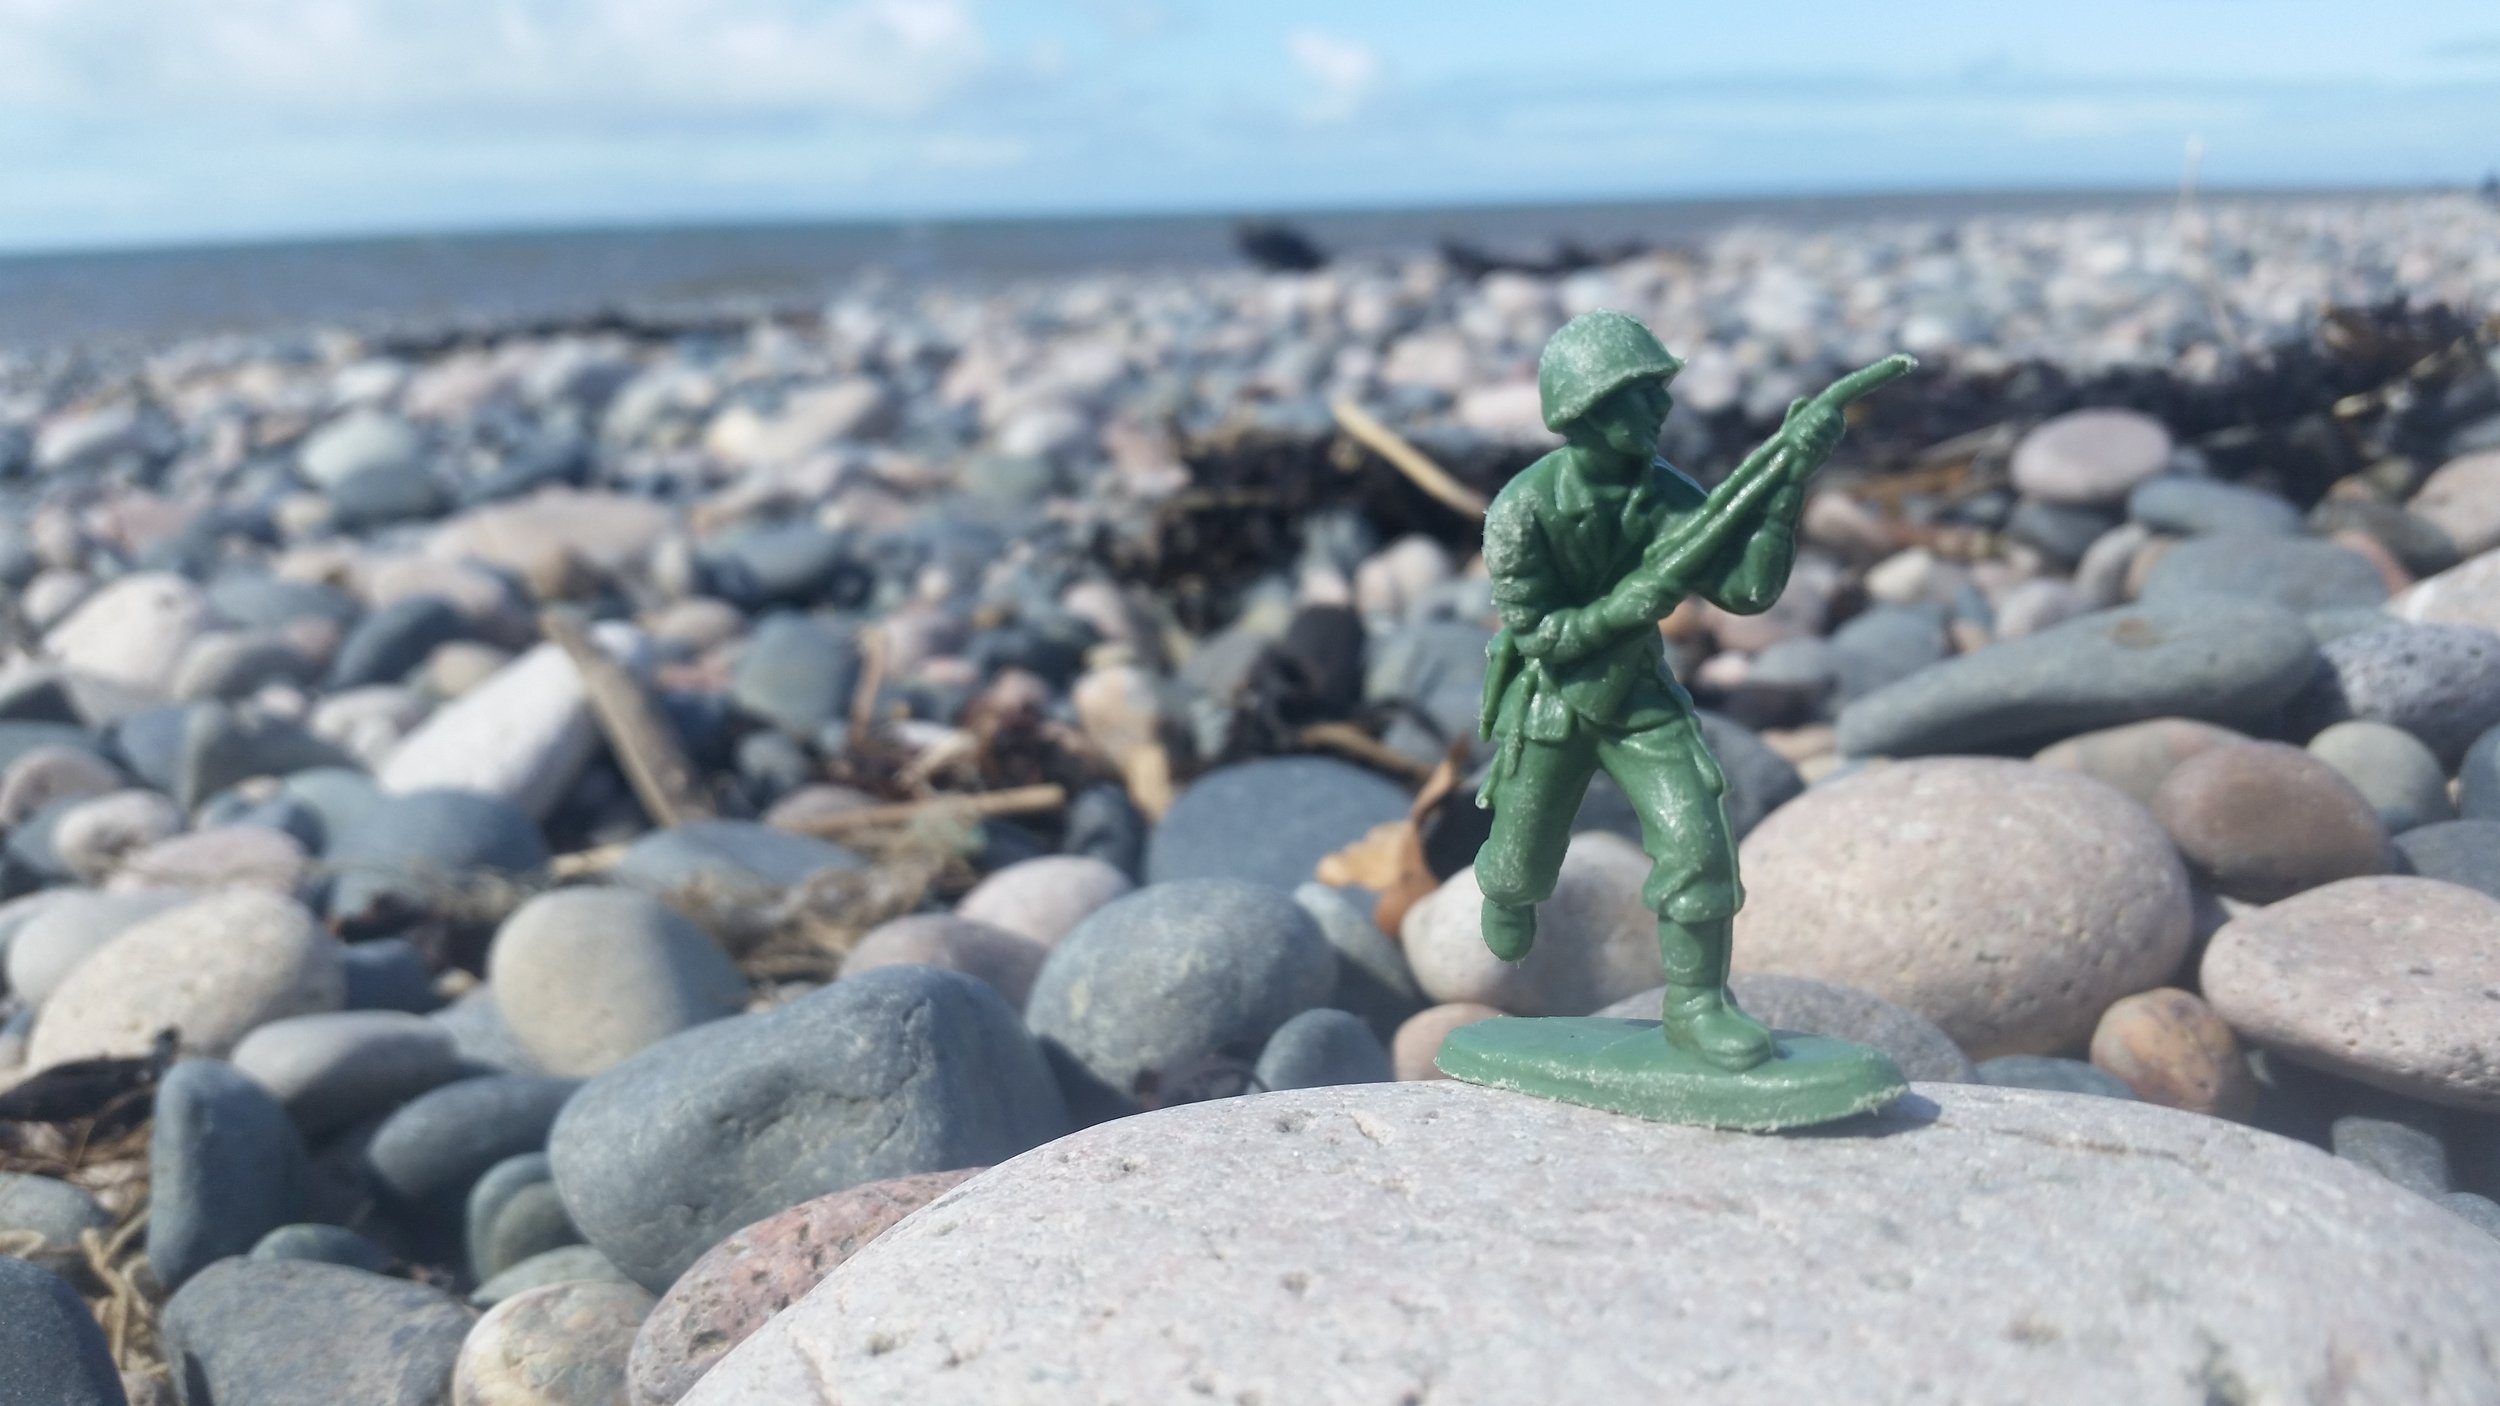 Saving Private Ryan - This GI looked a little forlorn without the rest of his platoon.